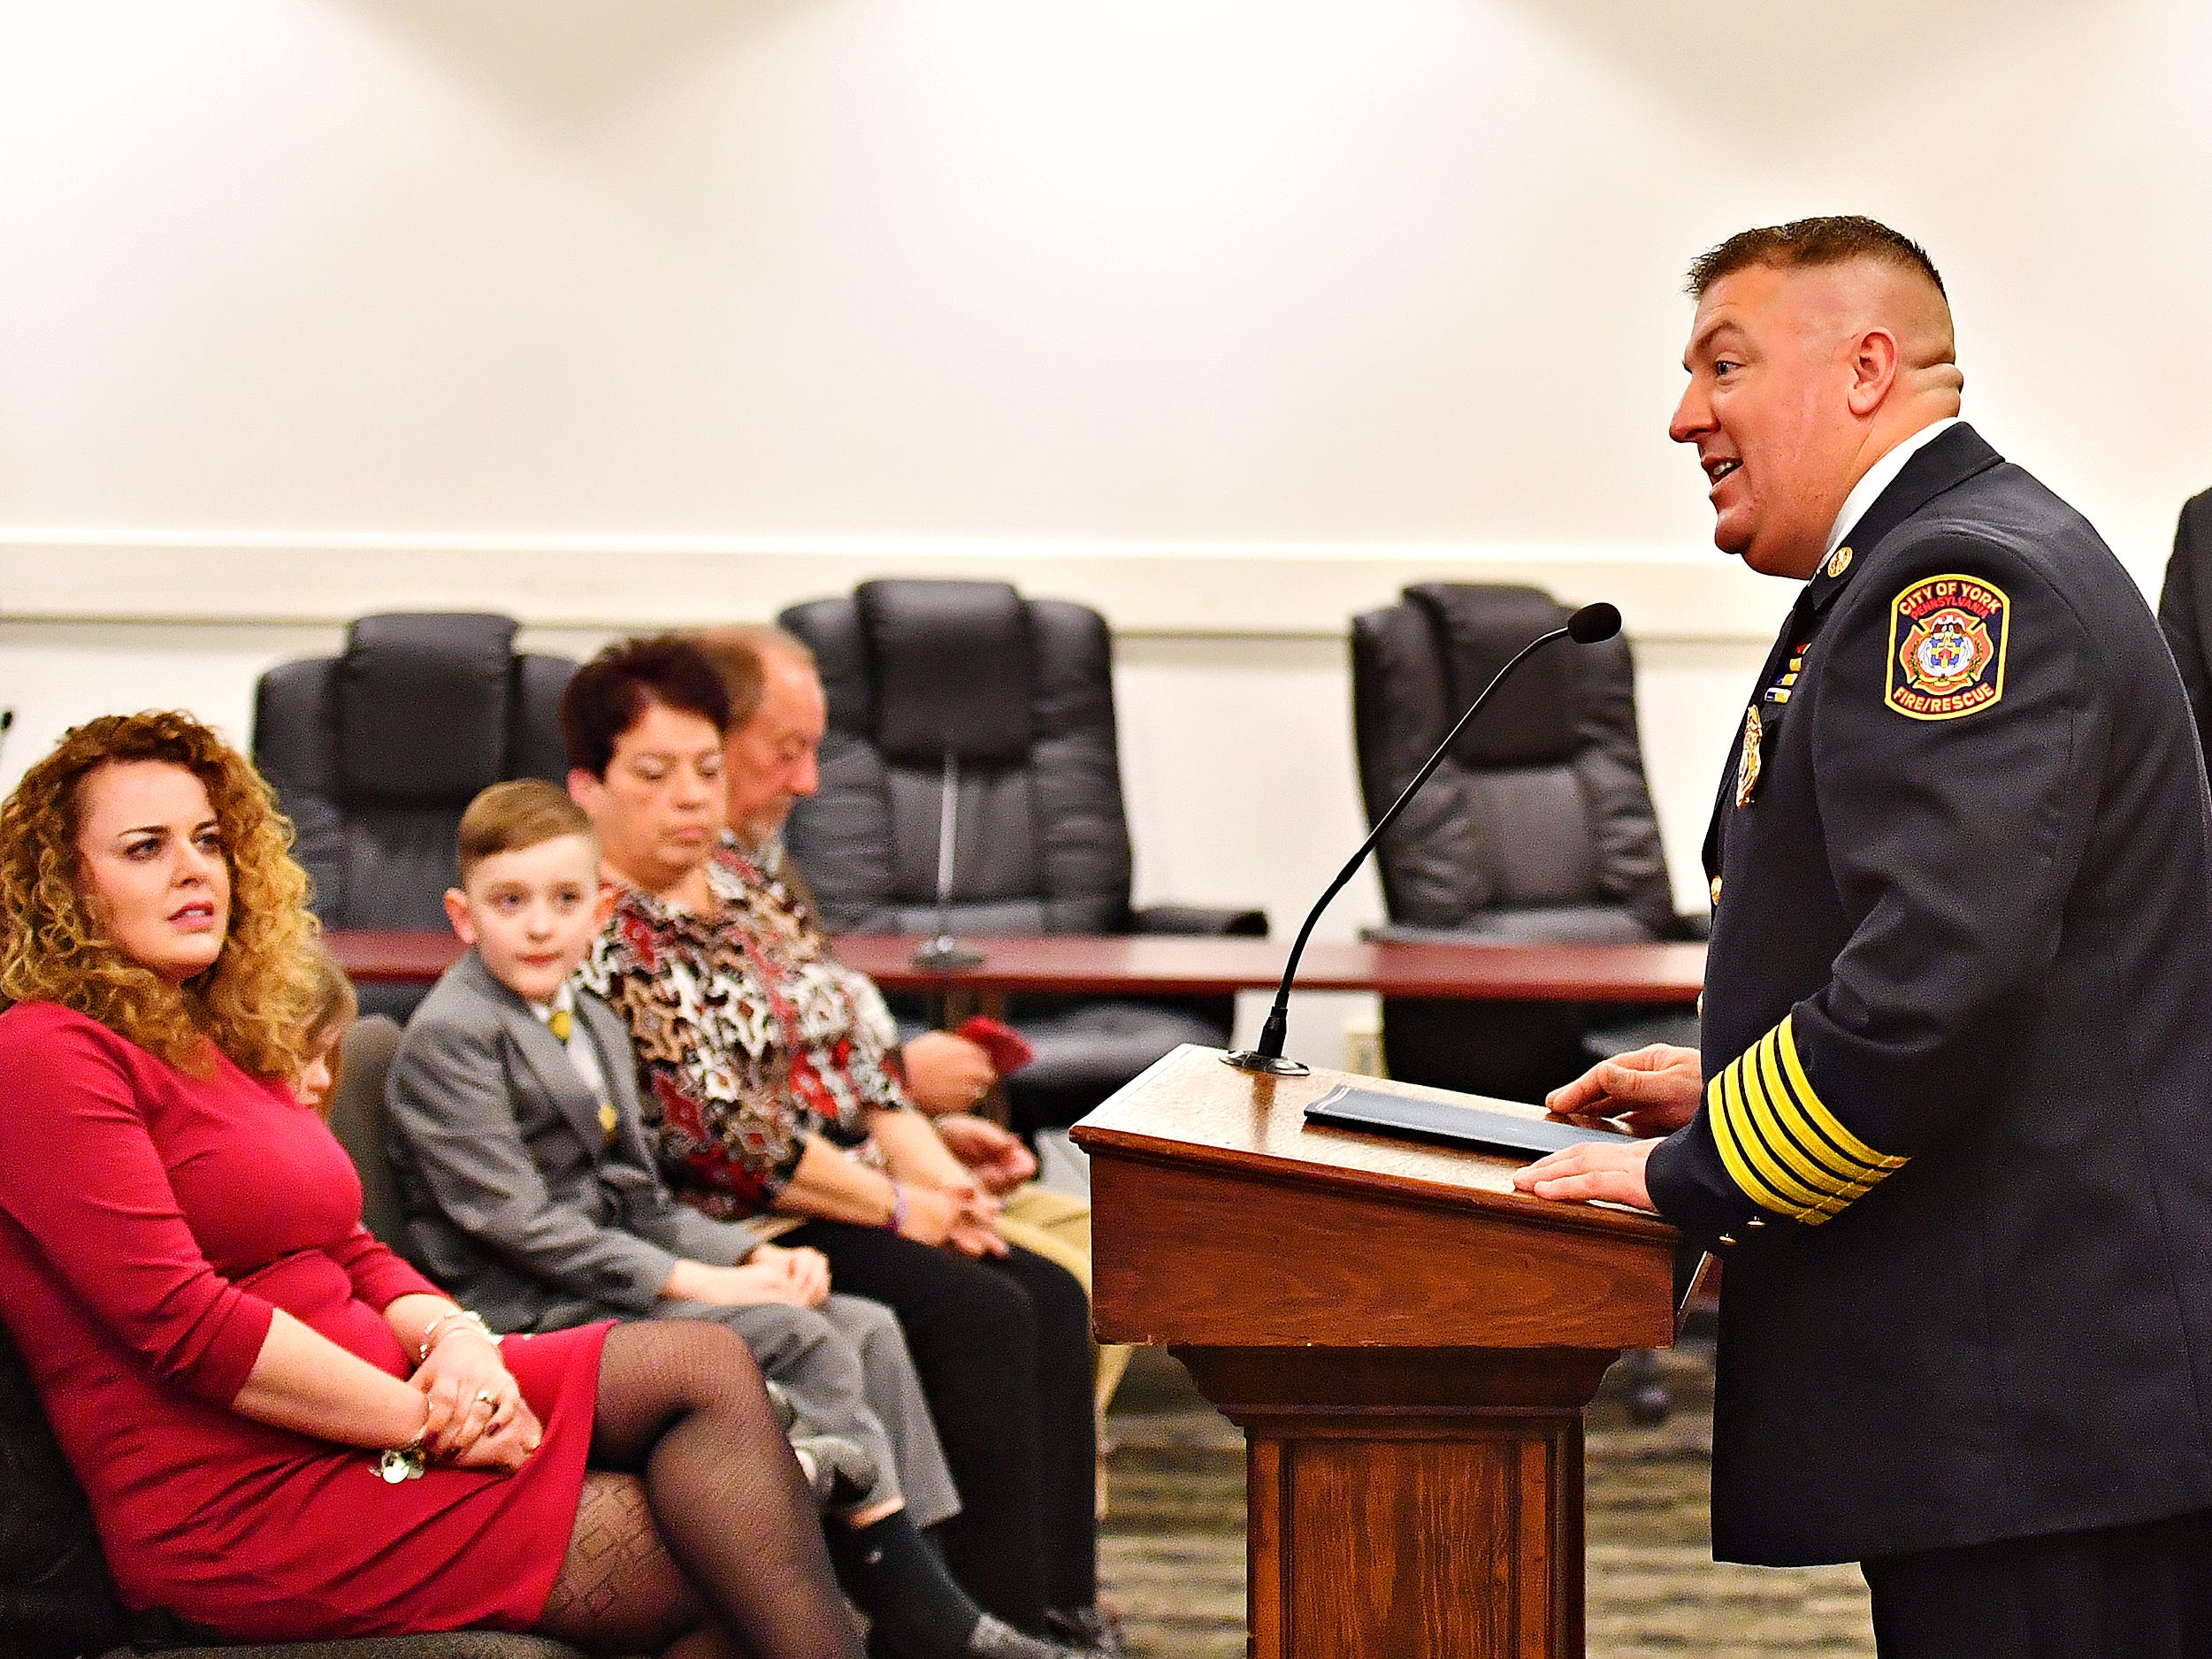 York City Fire Chief Chad Deardorff is celebrated during a swearing-in ceremony at York City Hall in York City, Friday, March 8, 2019. Dawn J. Sagert photo